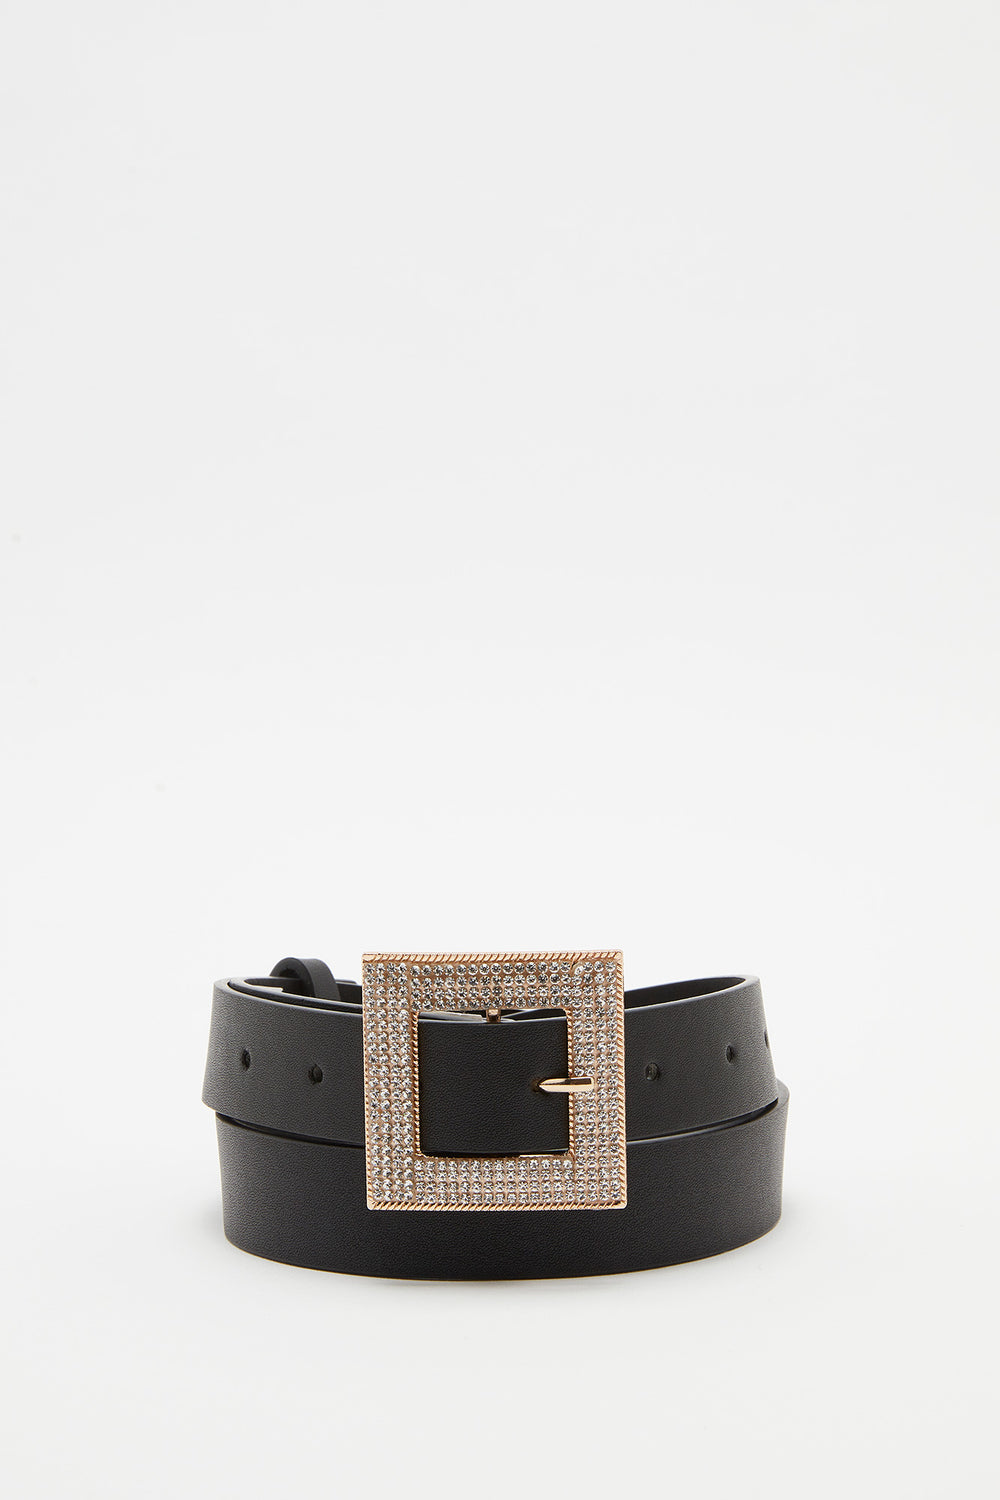 Rhinestone Square Buckle Belt Black